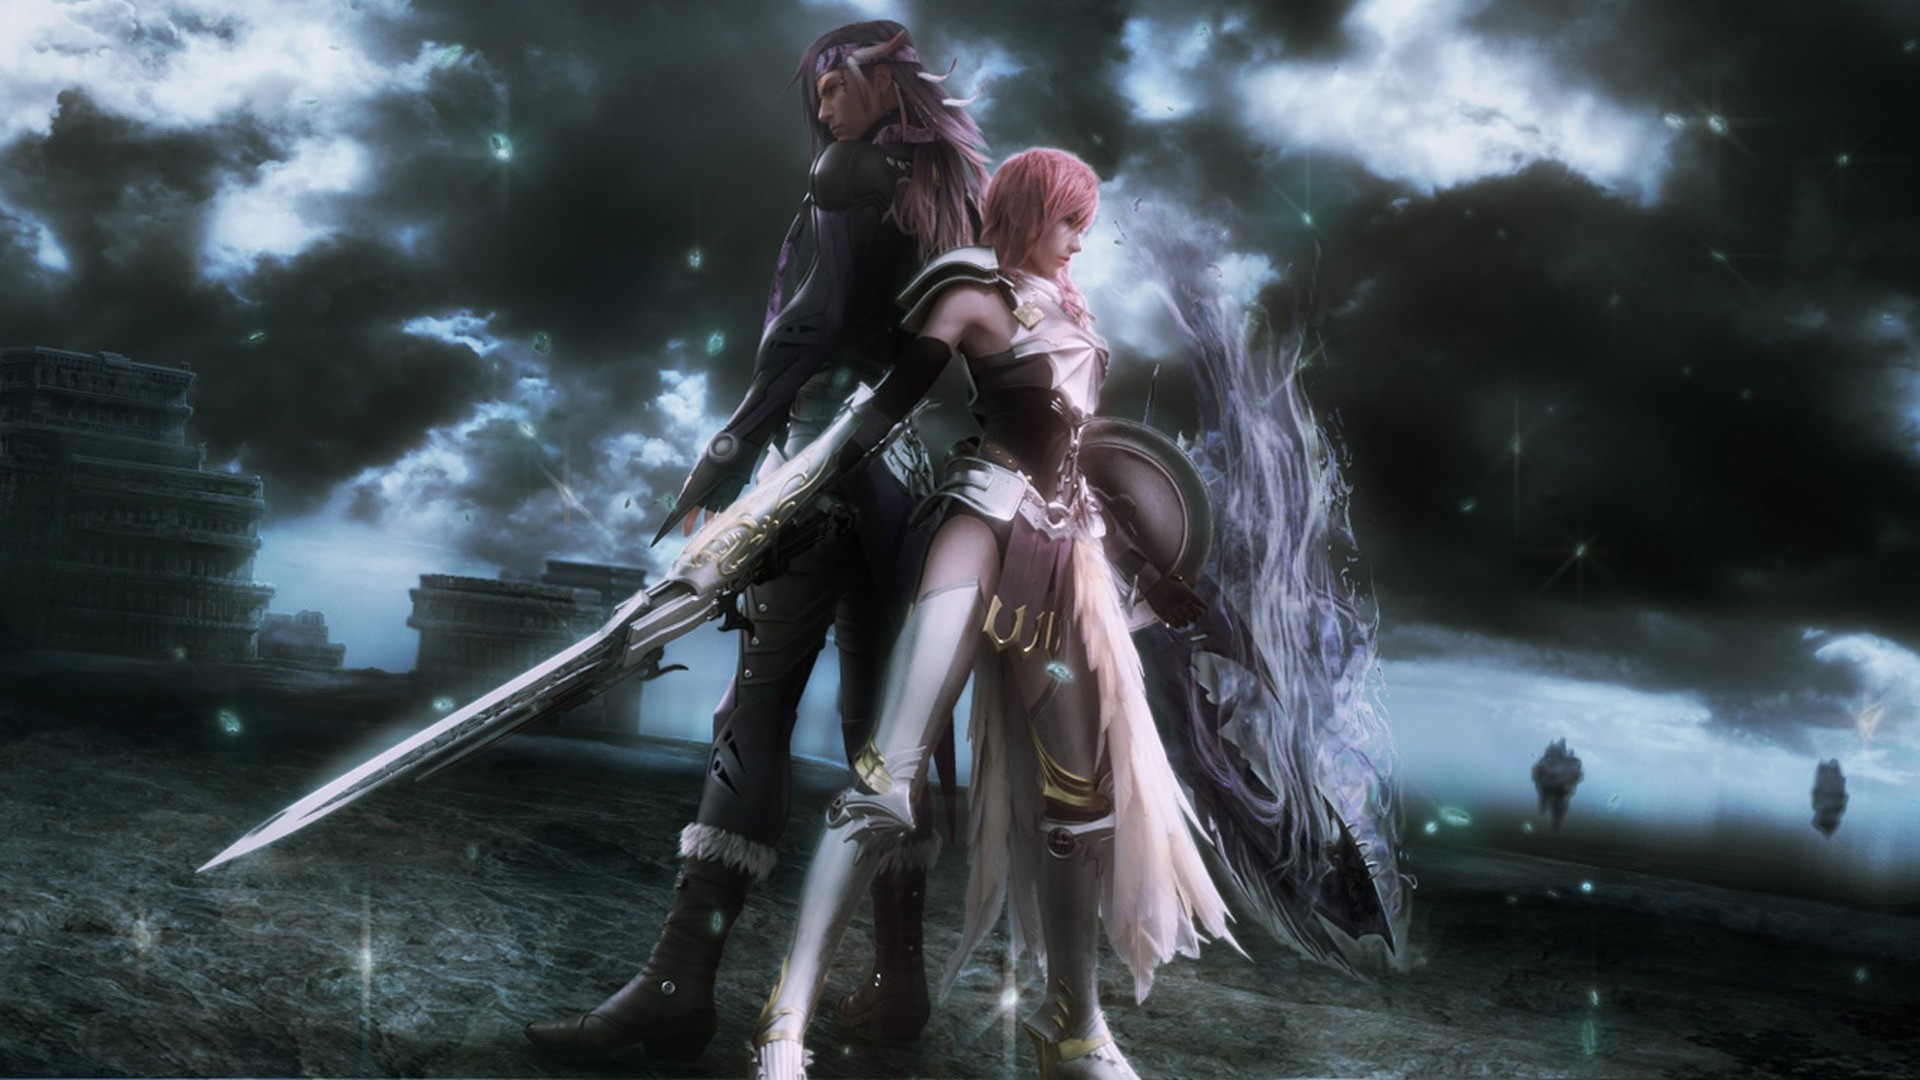 Final Fantasy XIII 2 Wallpaper (85+ pictures)